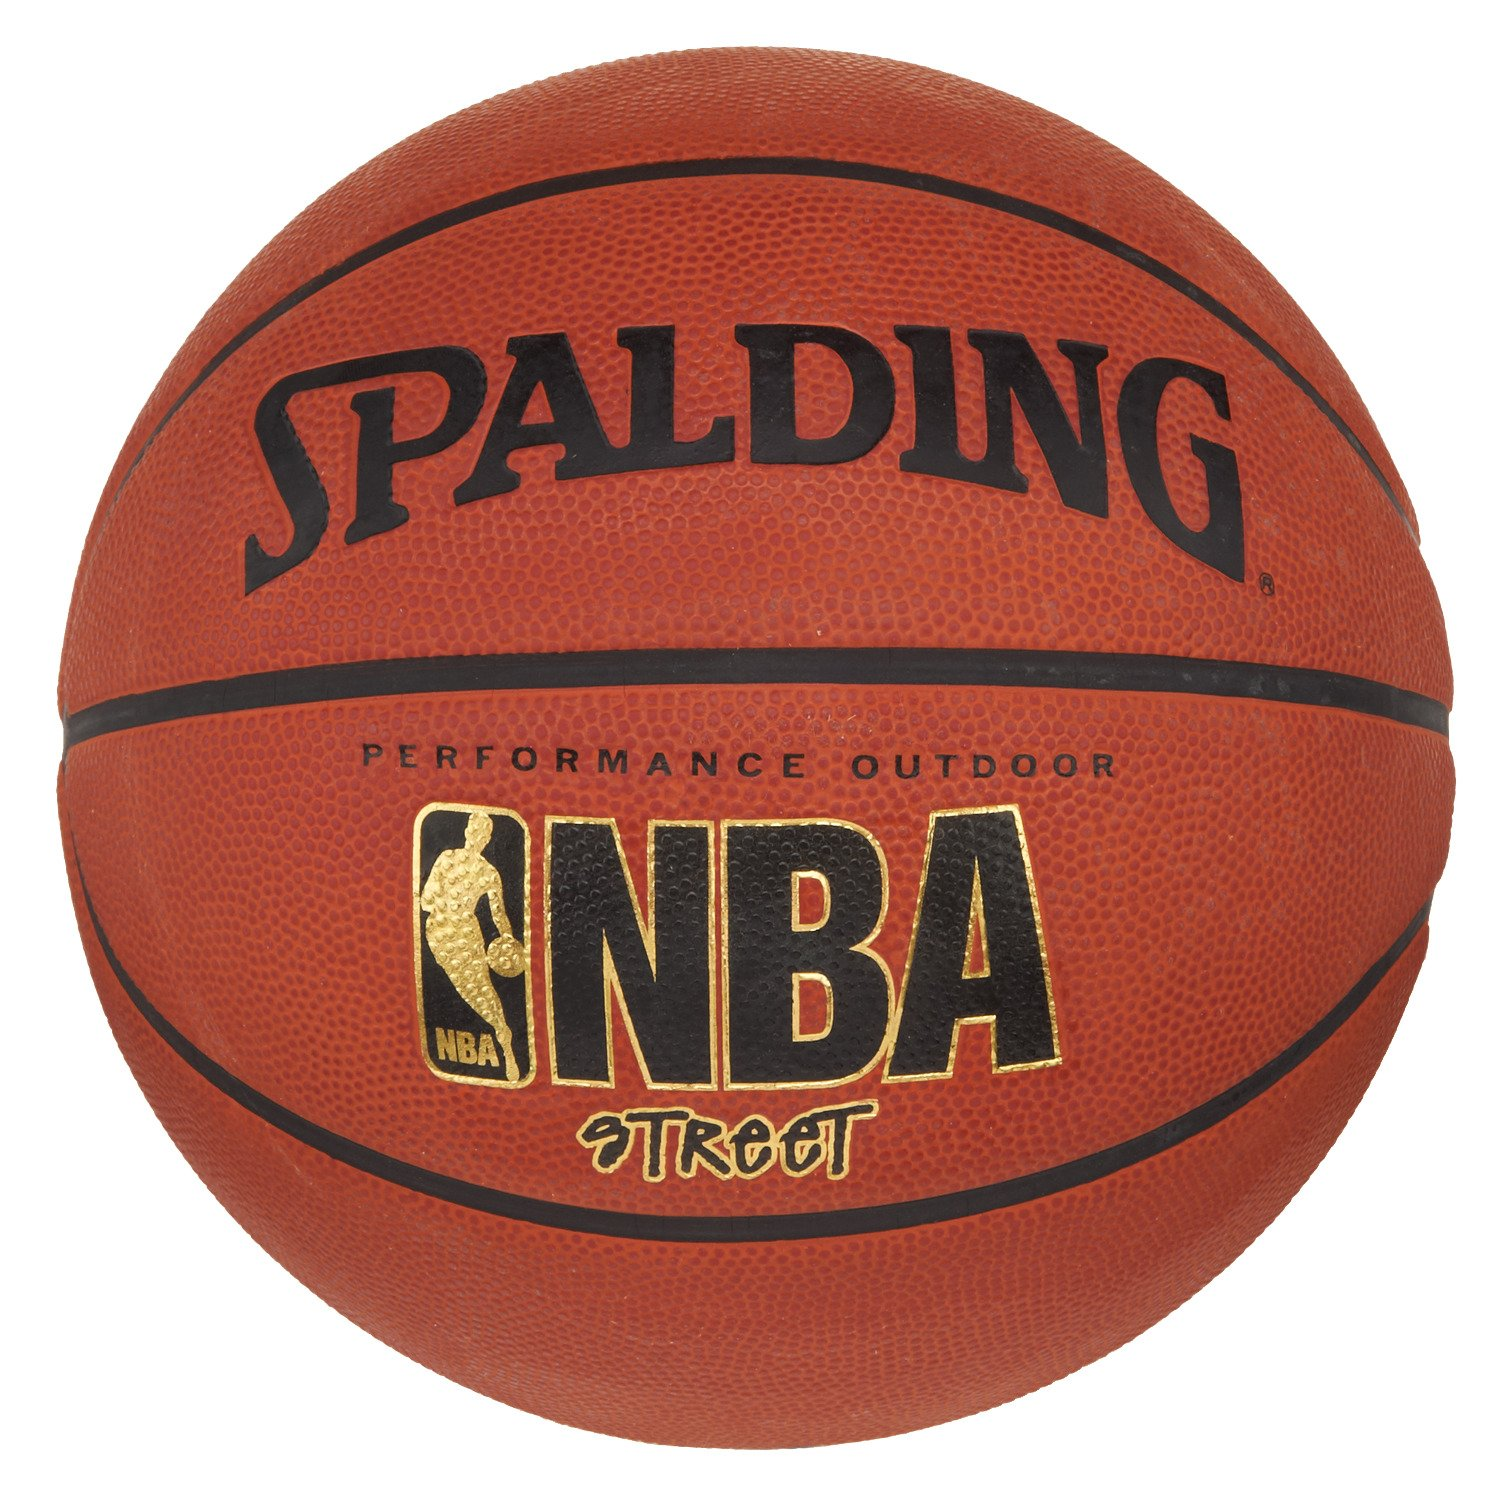 Basketball Ball Spalding Performance Nba Street Outdoor Basketball